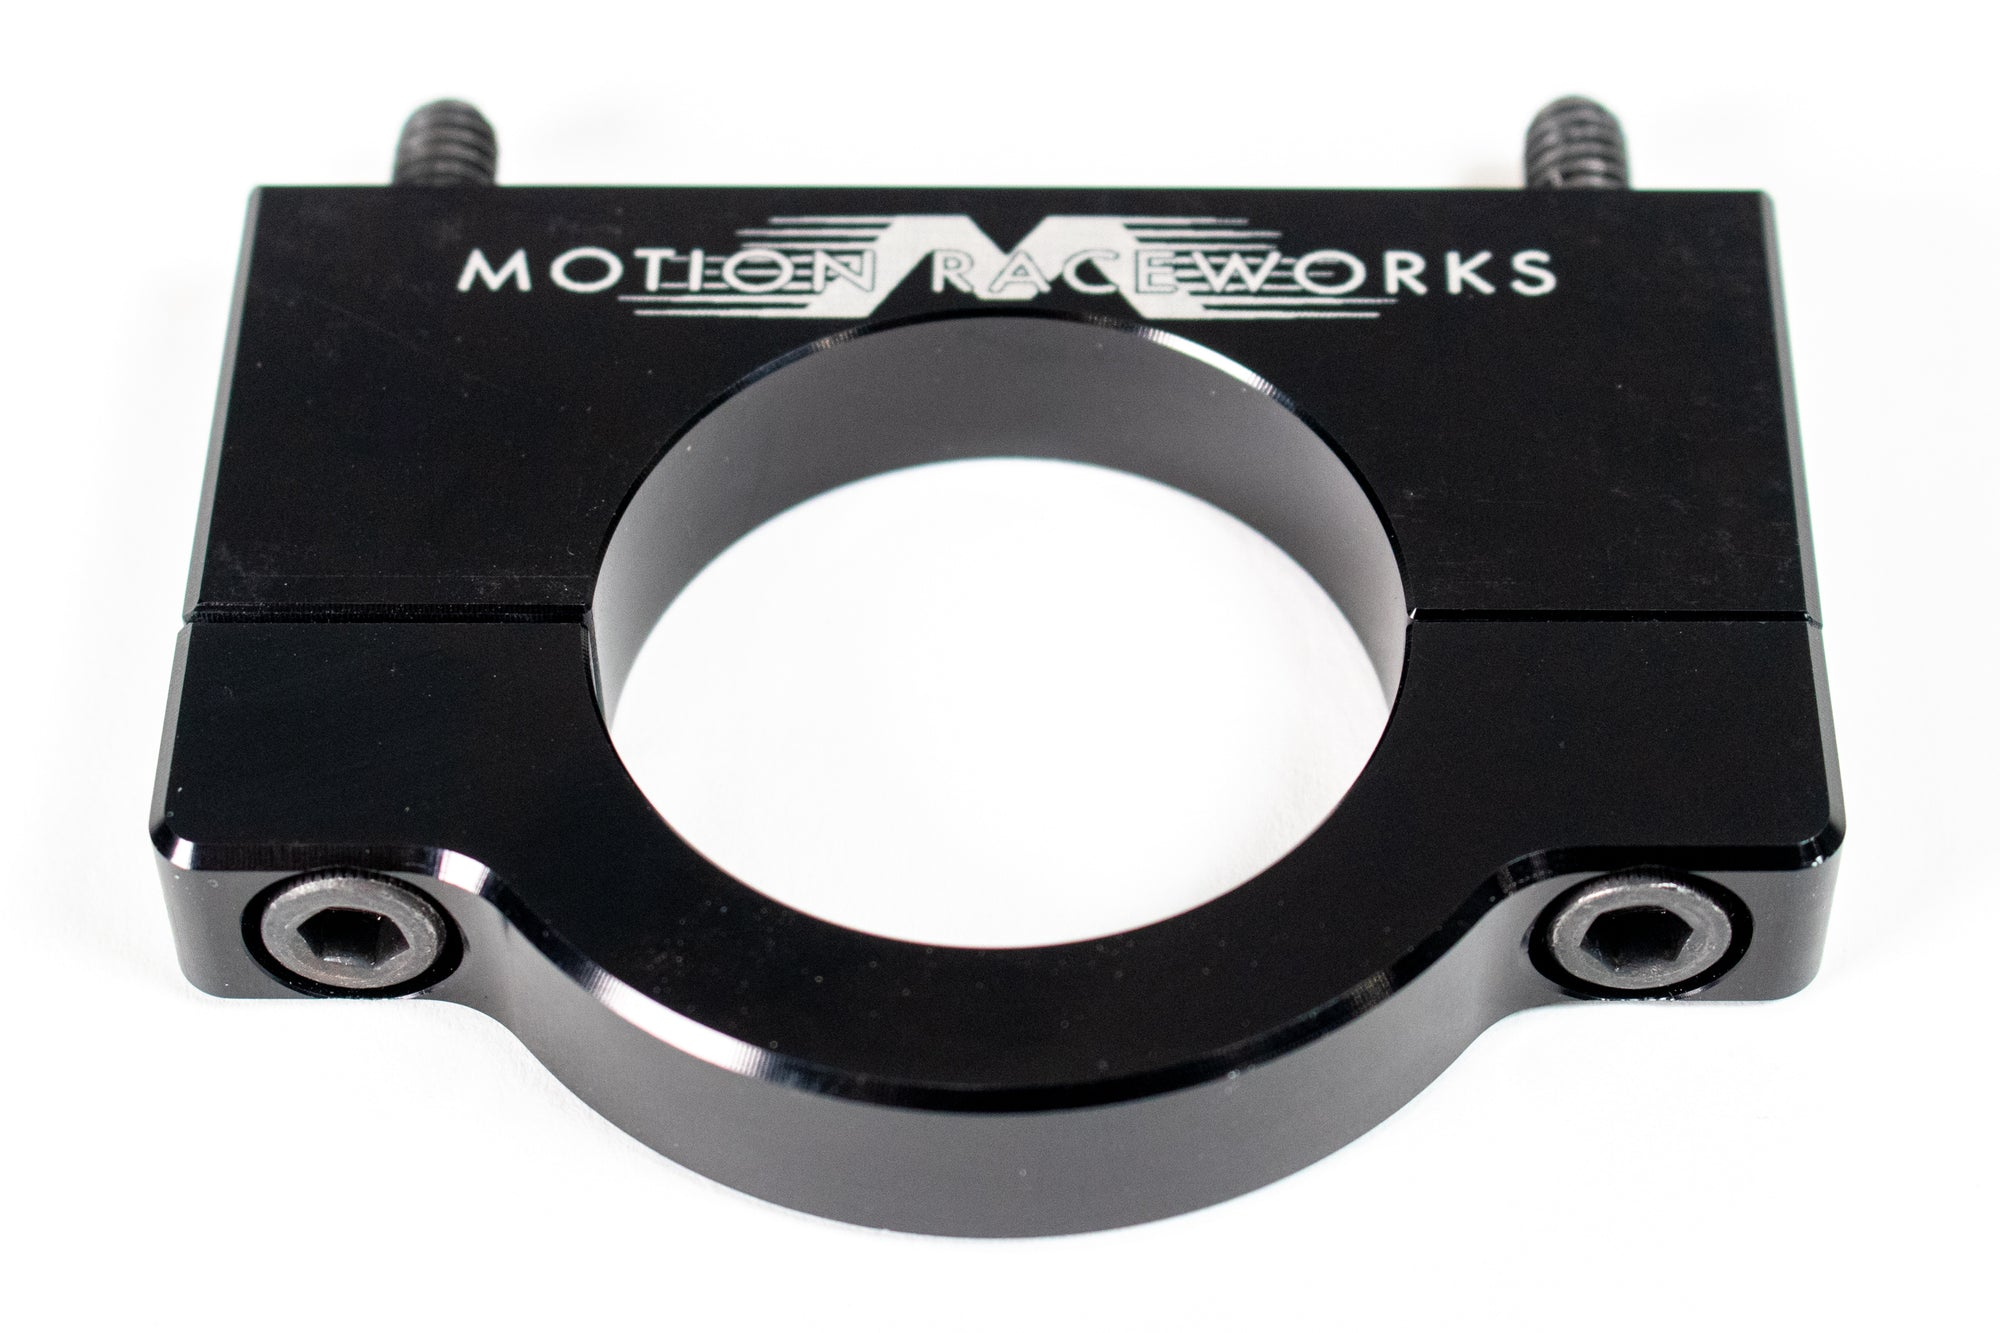 Motion Raceworks 1 5/8 Roll bar mount 1812003-Motion Raceworks-Motion Raceworks